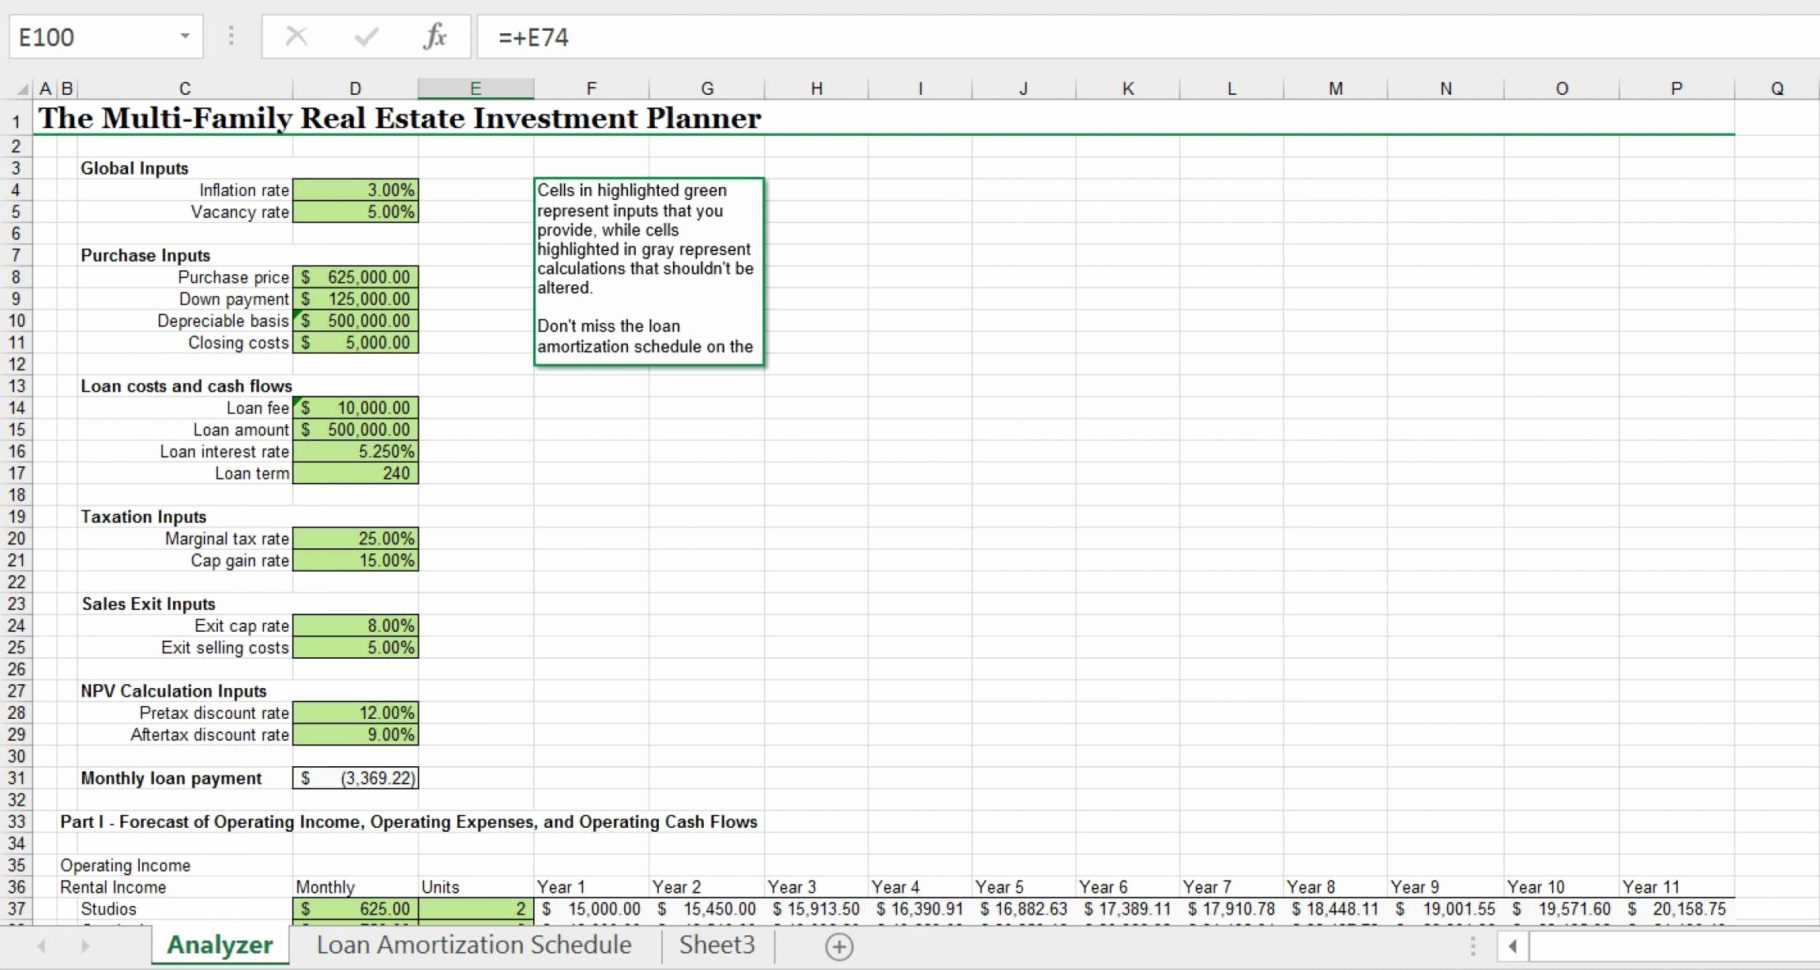 Roi Spreadsheet Template Real Estate Pertaining To Marketing Roi Template Excel Unique Spreadsheet Examples Real Estate